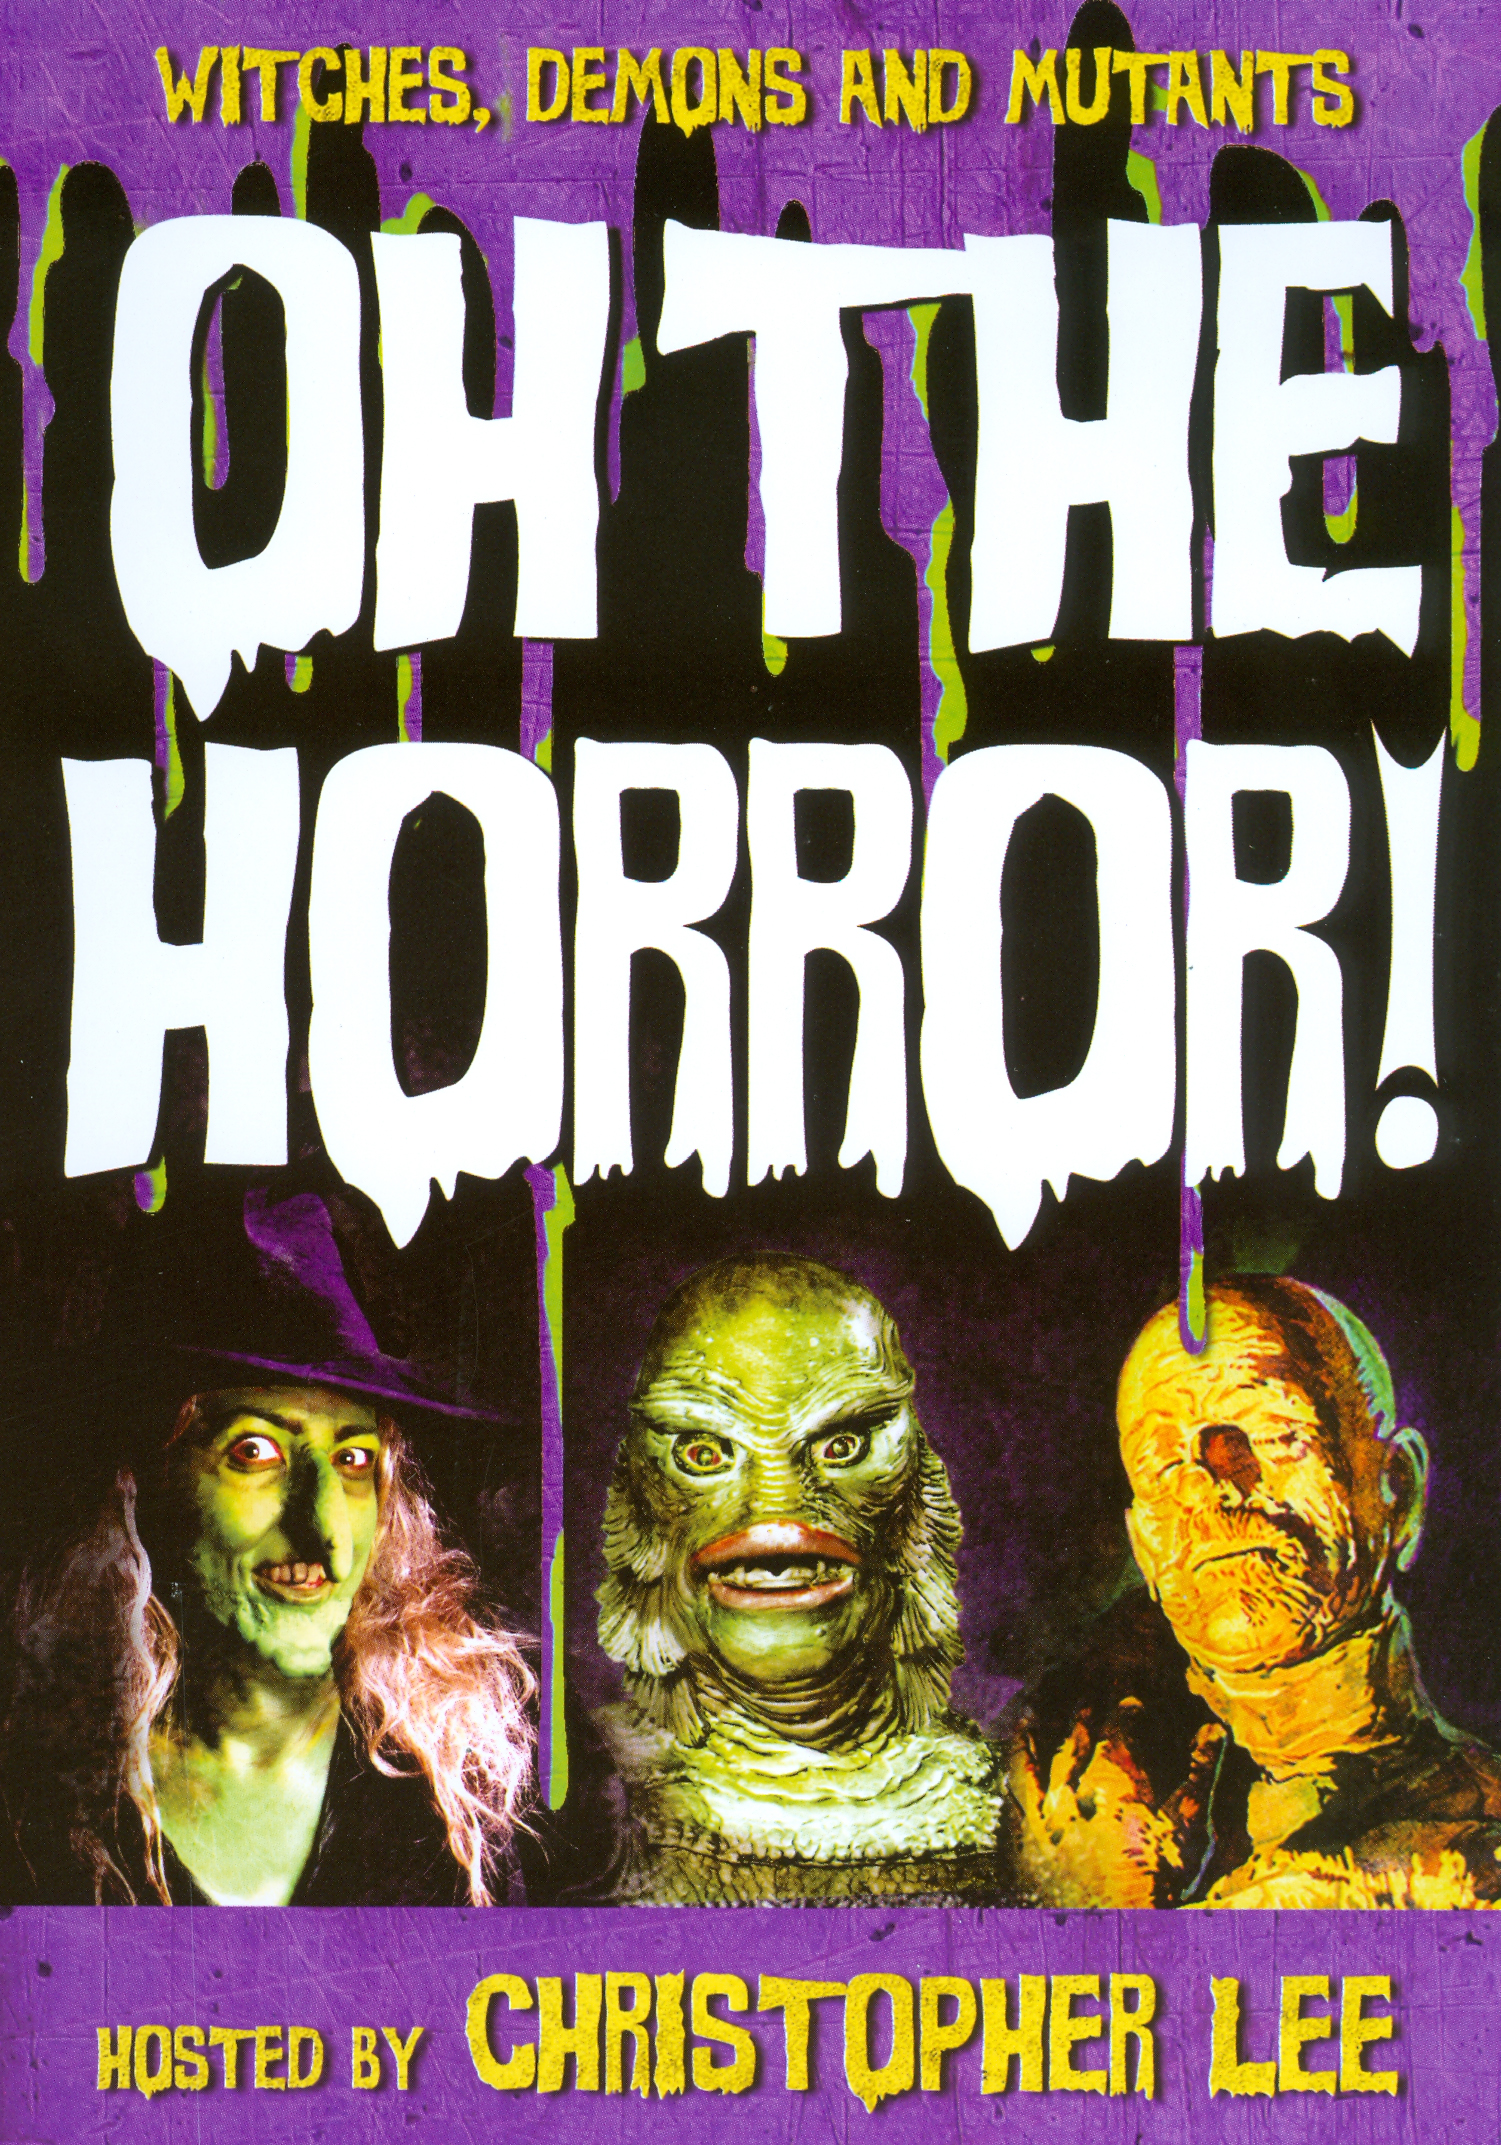 Witches, Demons & Mutants: Oh the Horror!